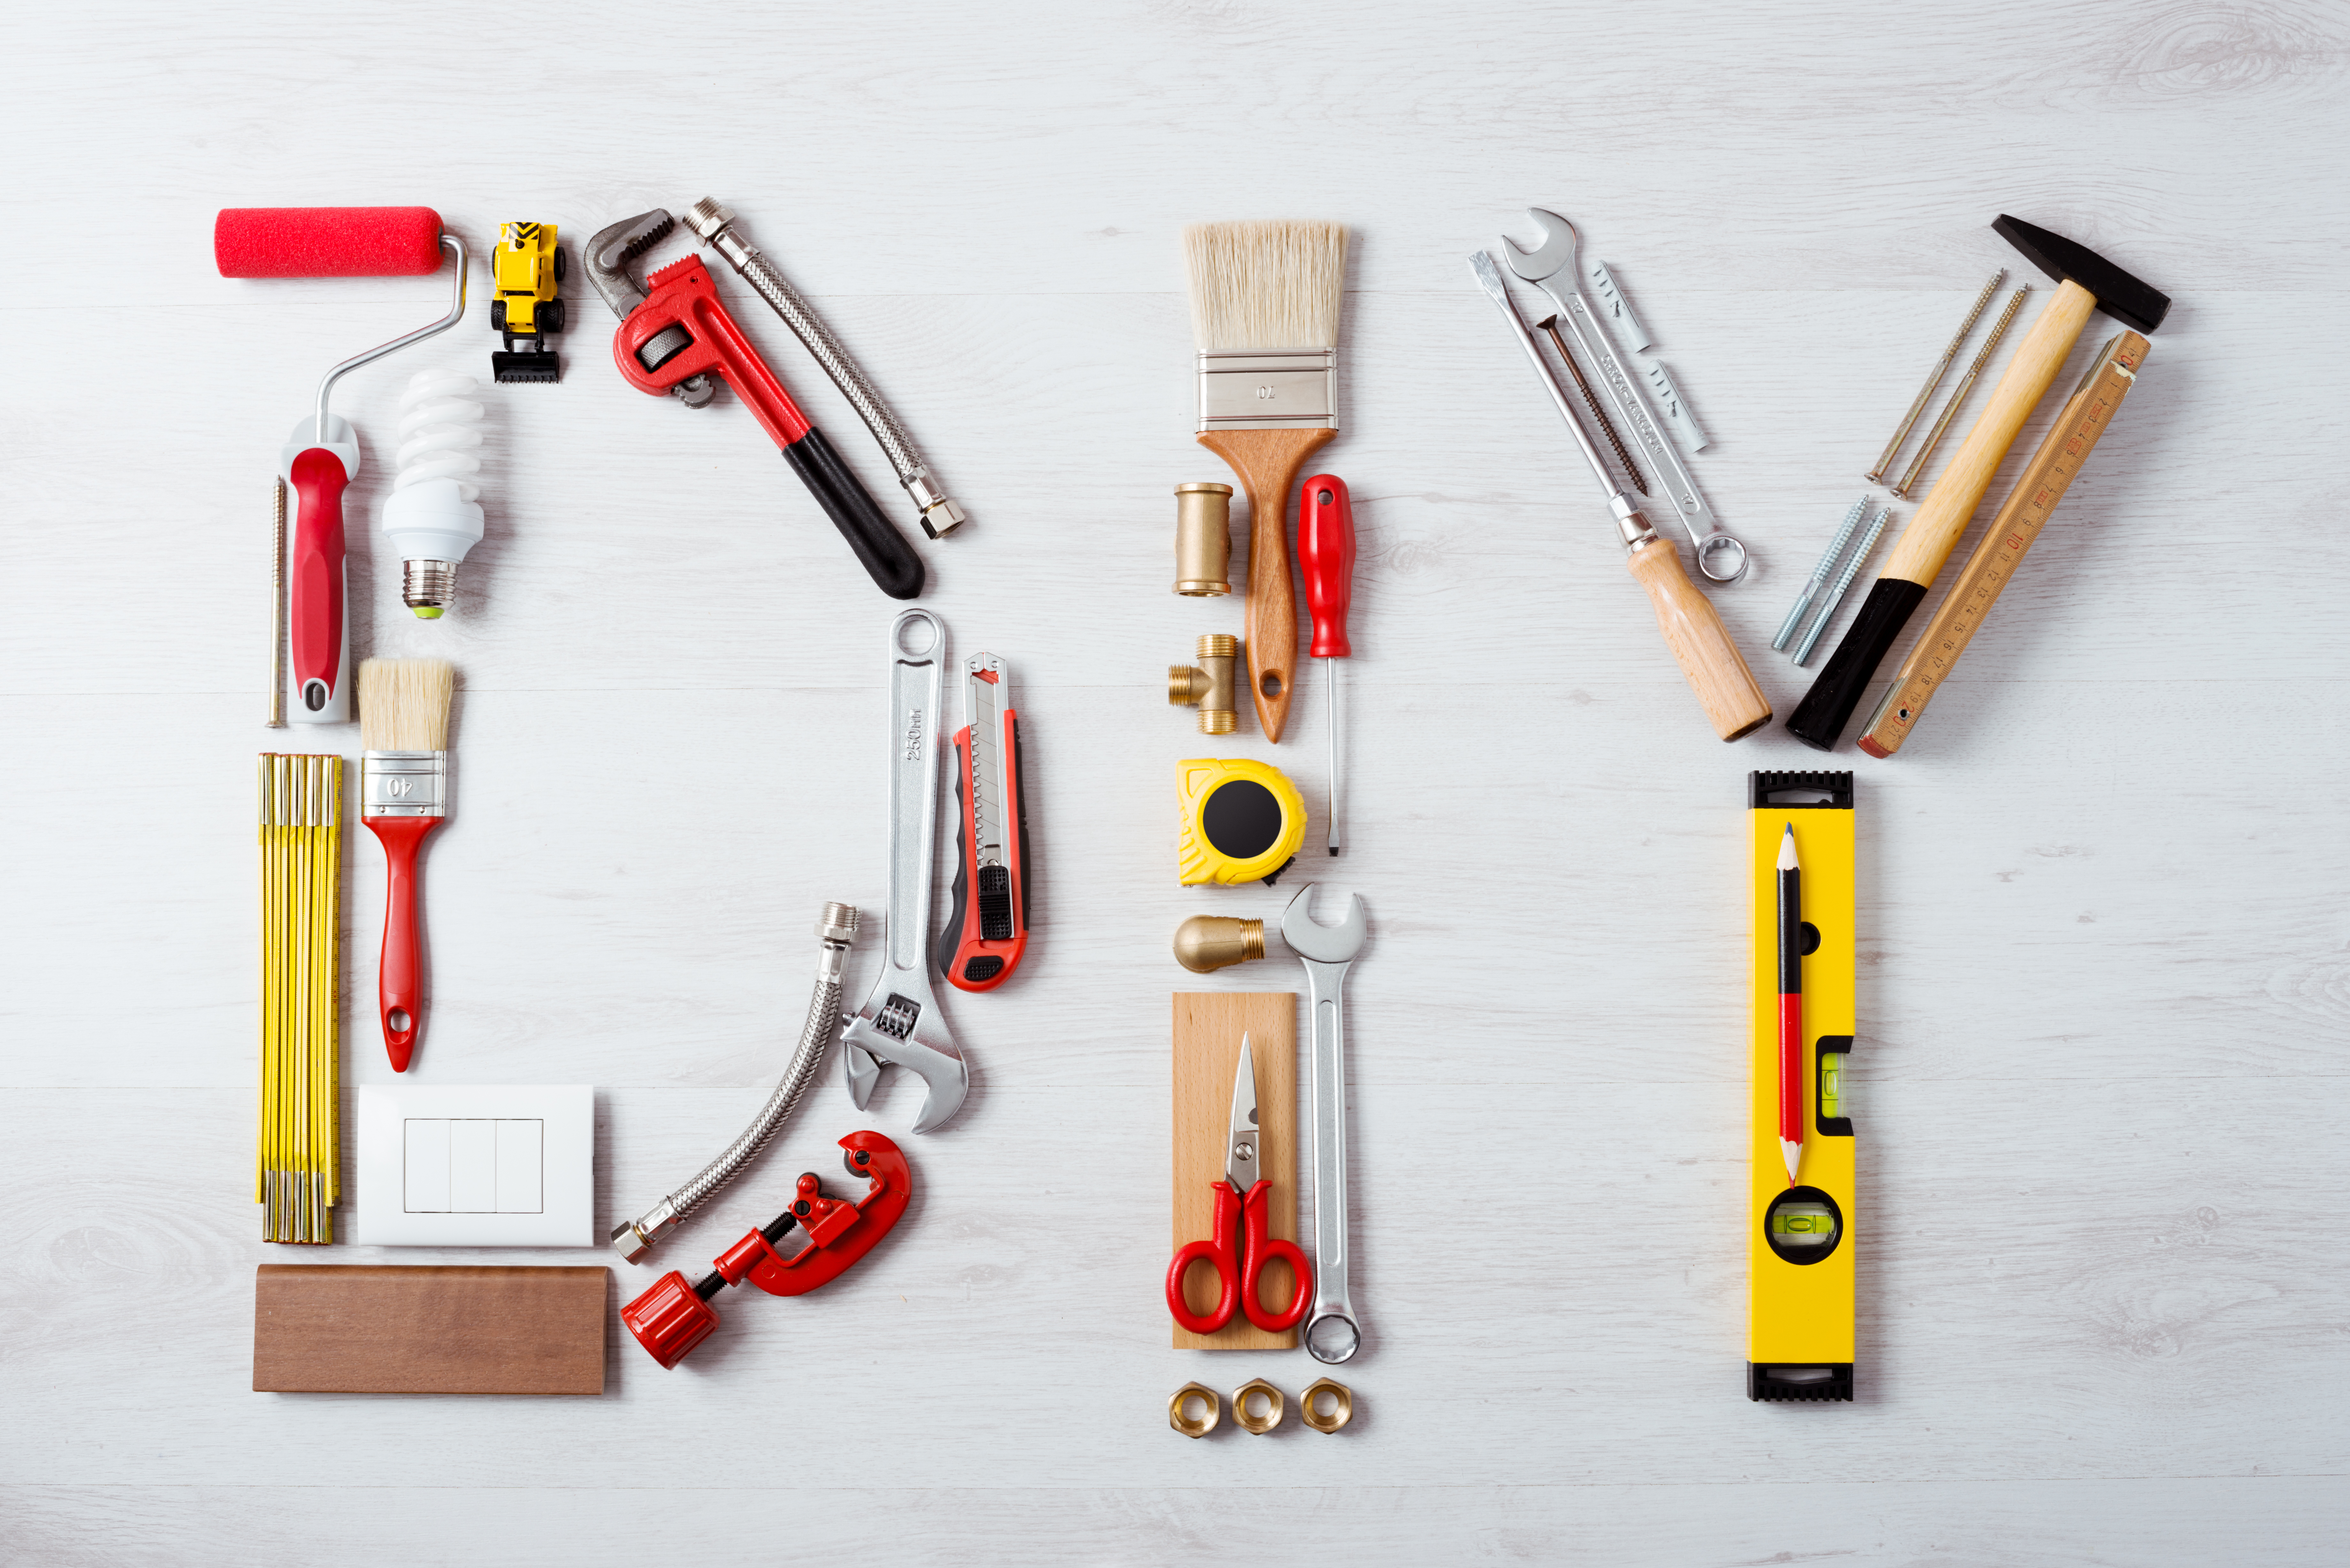 Construction tools in the form of house on wooden background. construction tools: pliers, hammer, pruner, screws, putty knife and ruler